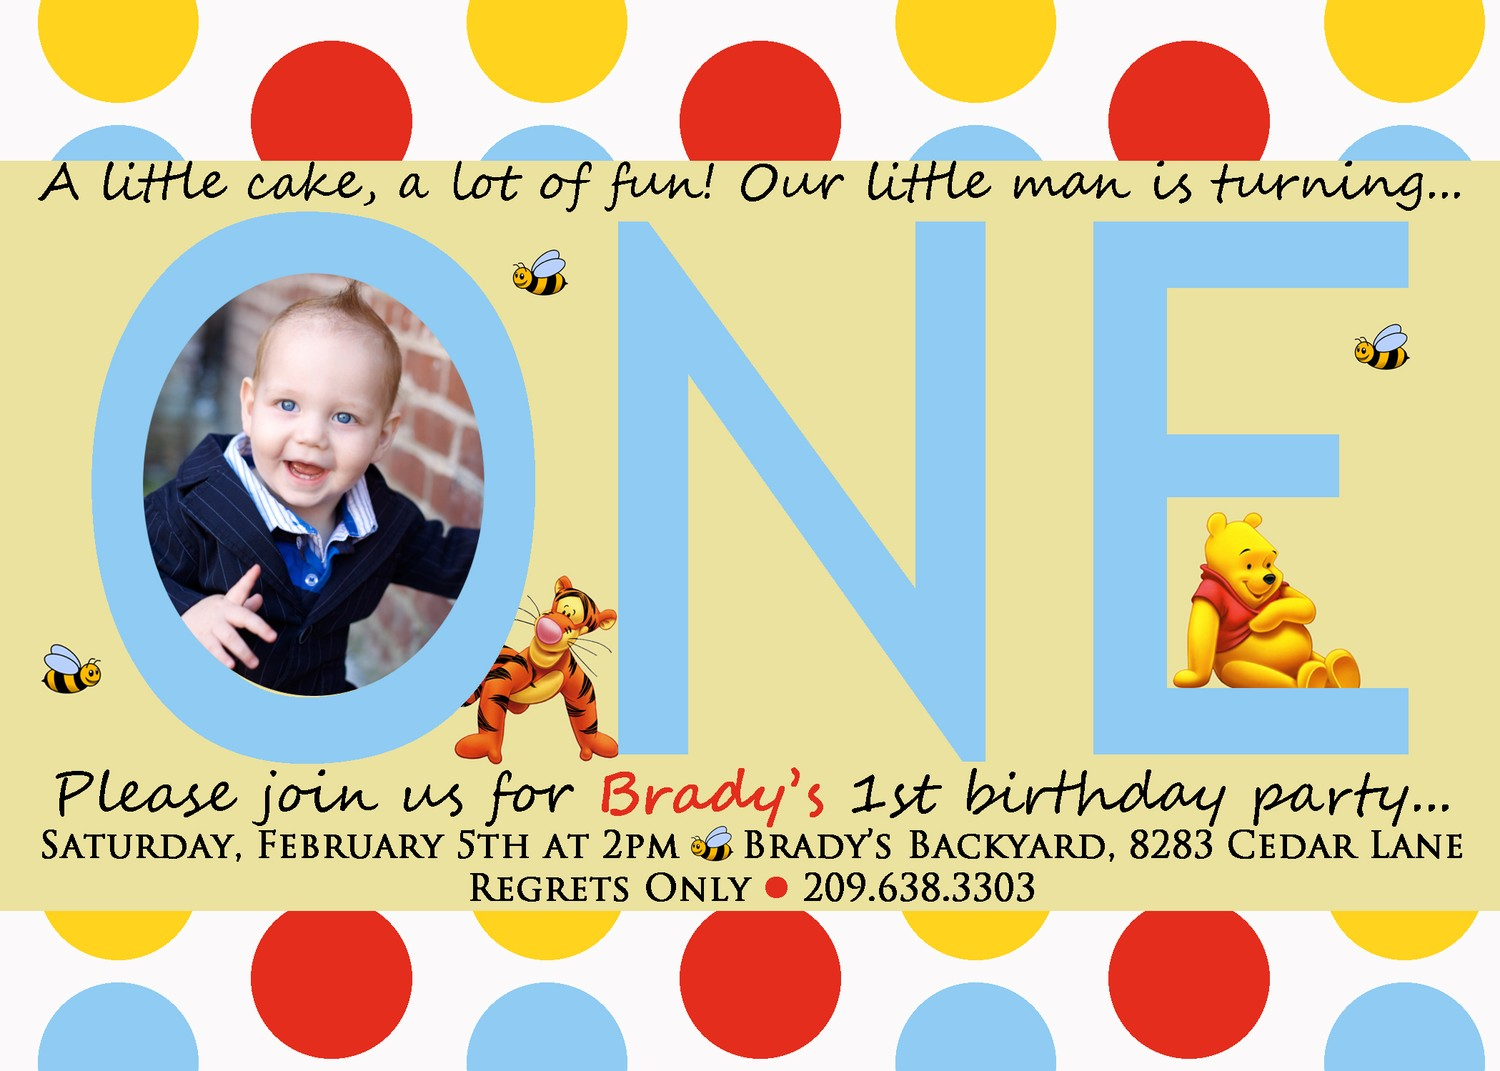 Winnie the pooh invitations for 1st birthday dolanpedia winnie the pooh invitations for 1st birthday stopboris Choice Image